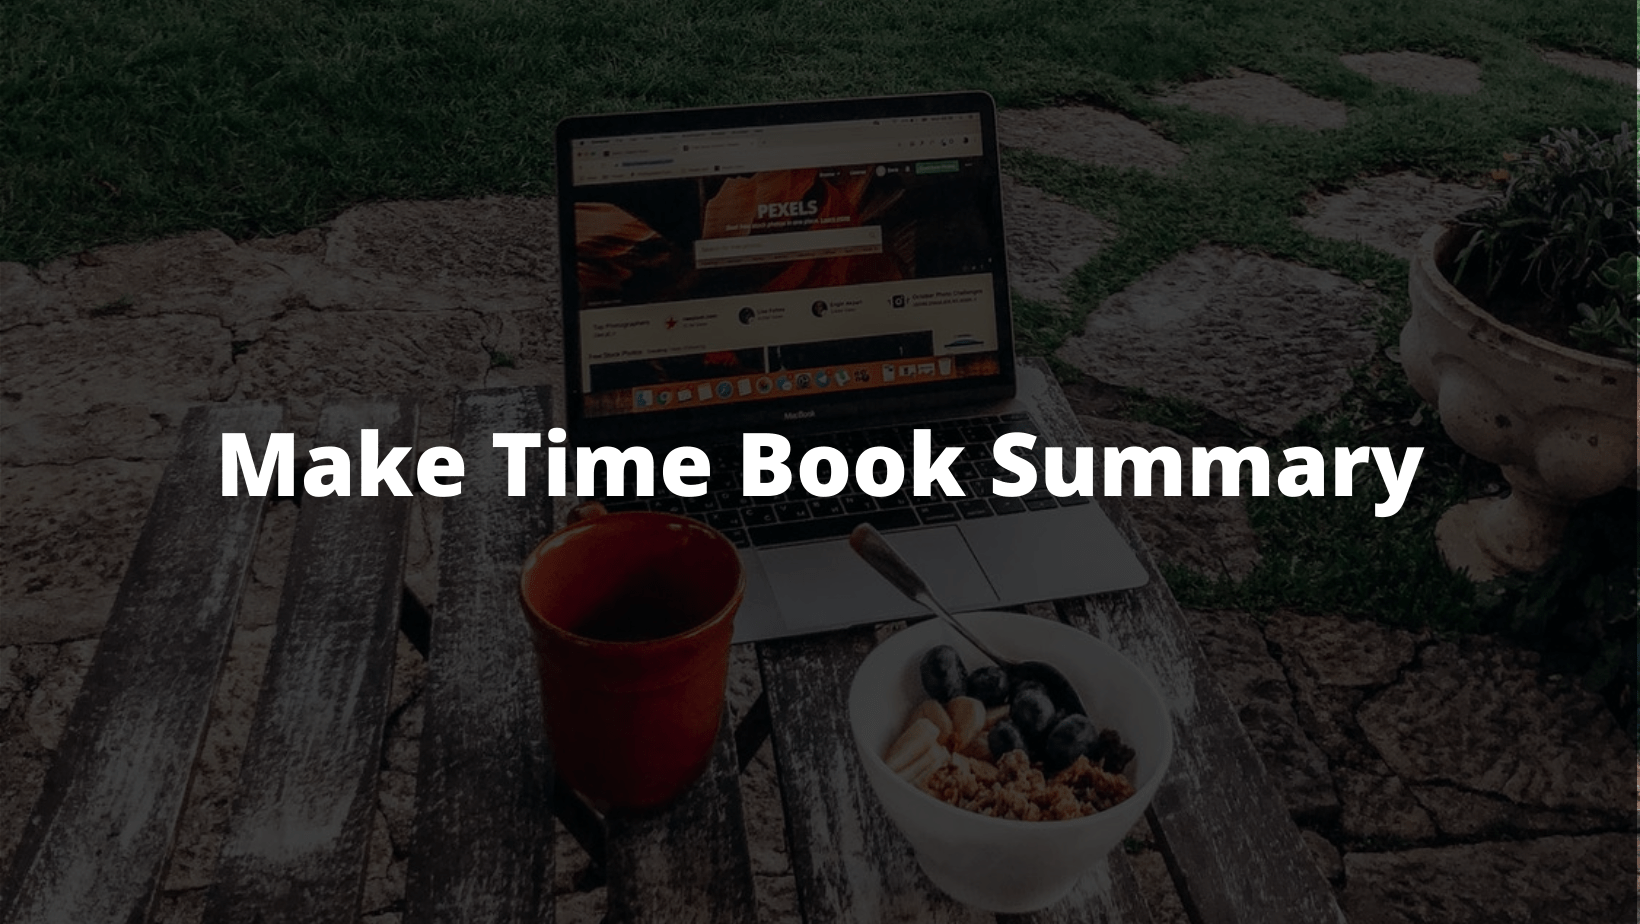 Make Time Book Summary